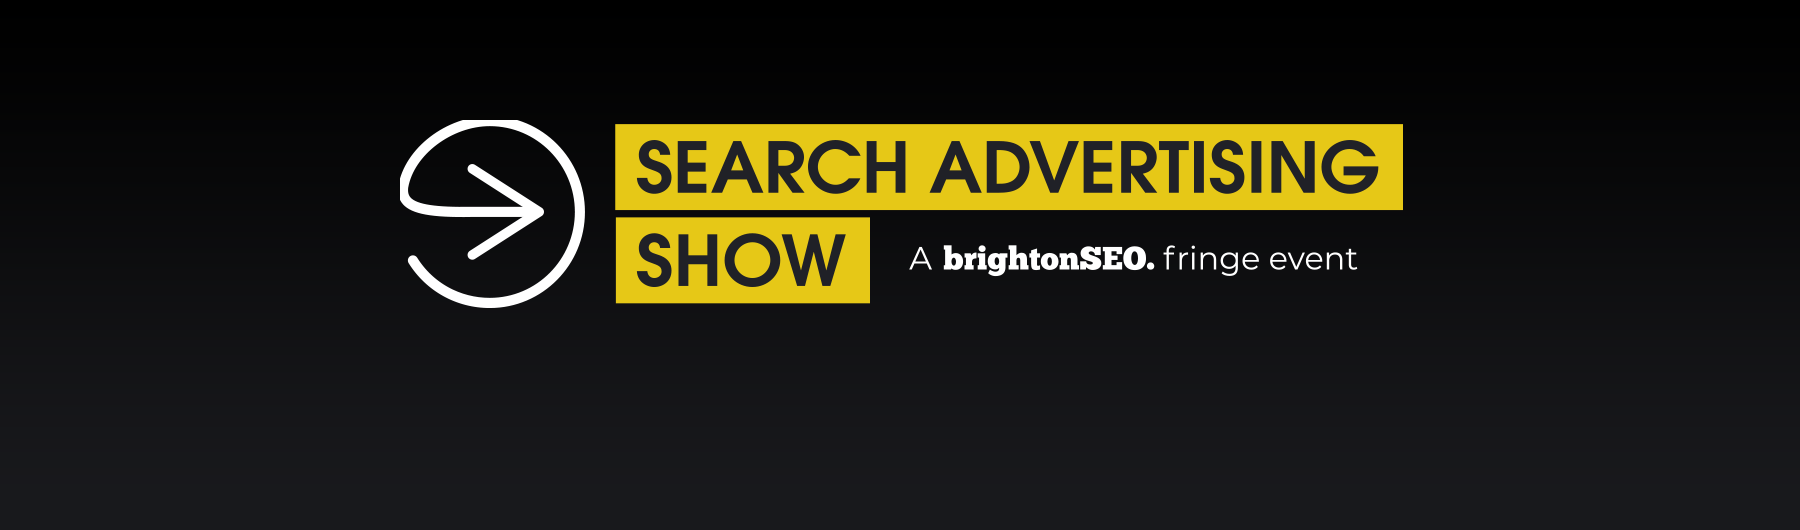 Search Advertising Show September 2019